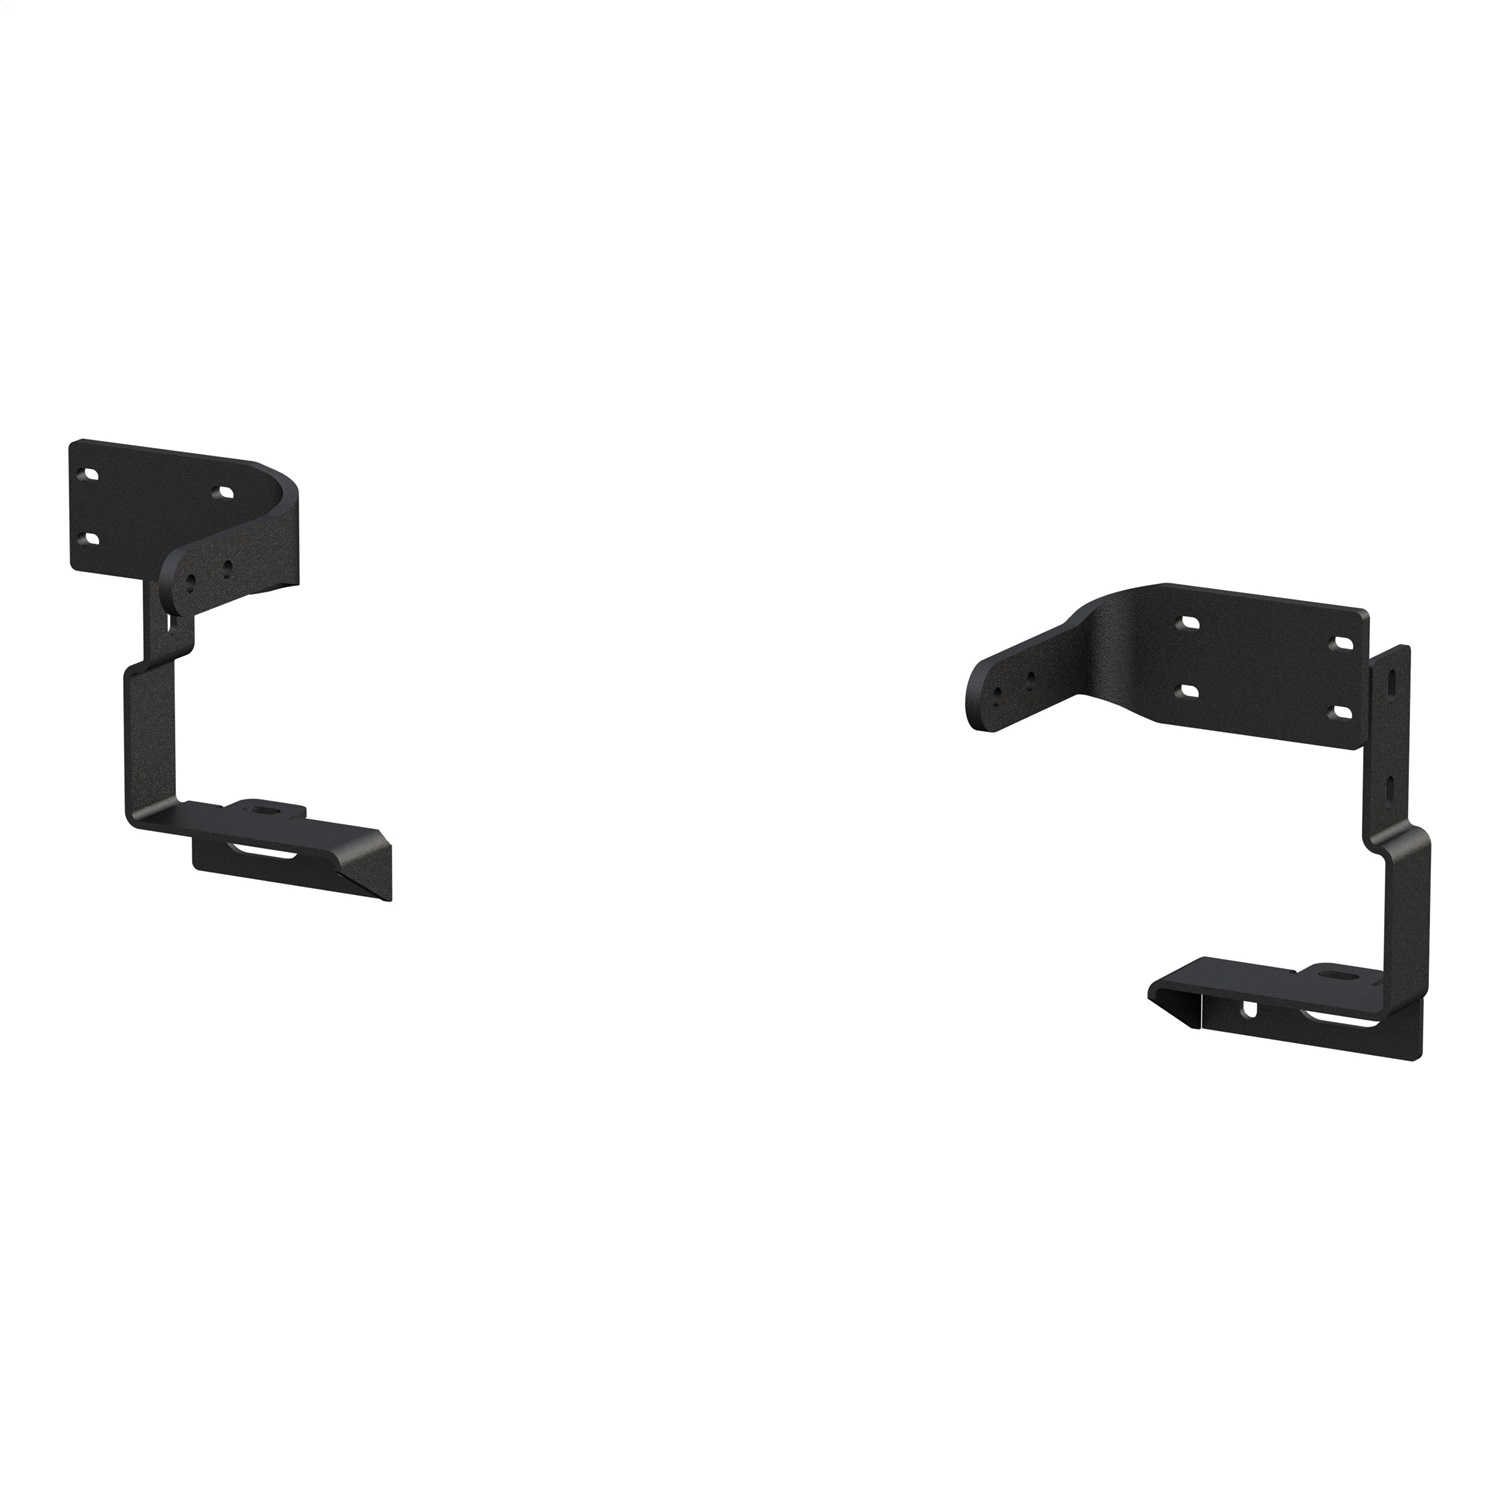 Prowler Max Grille Guard Brackets, Component For PN[311033-321334/321033-321334]